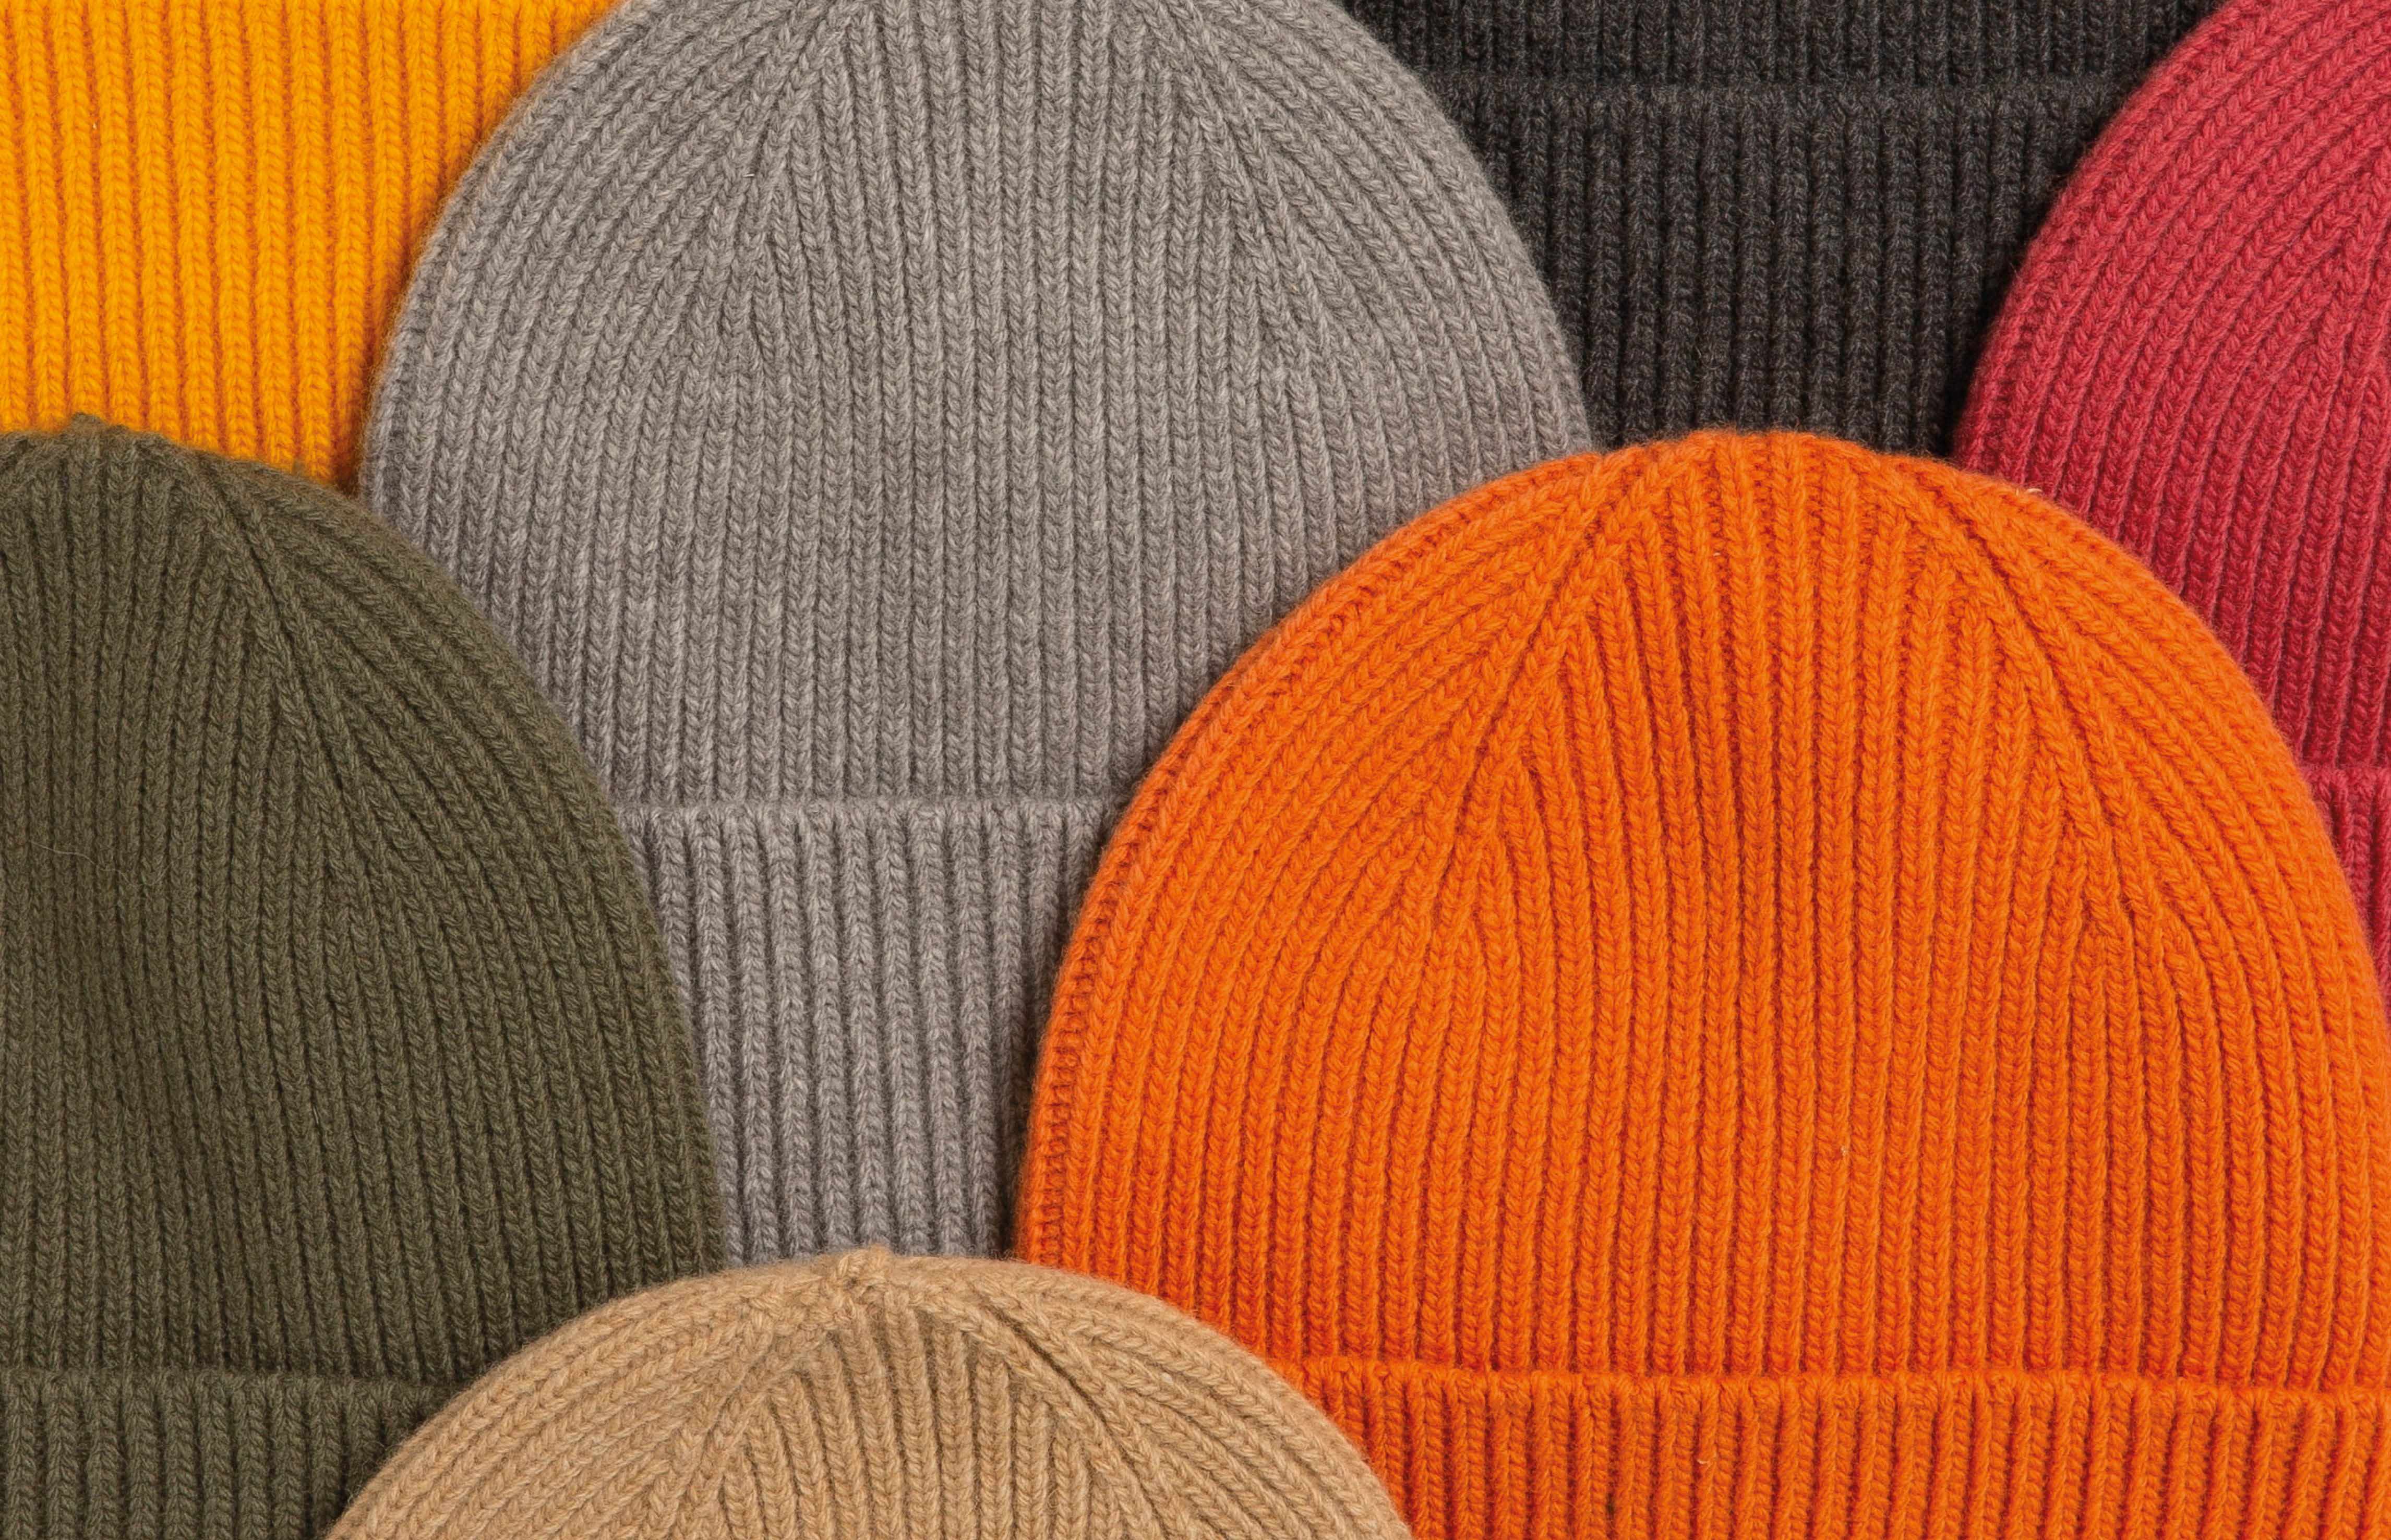 In defence of the beanie